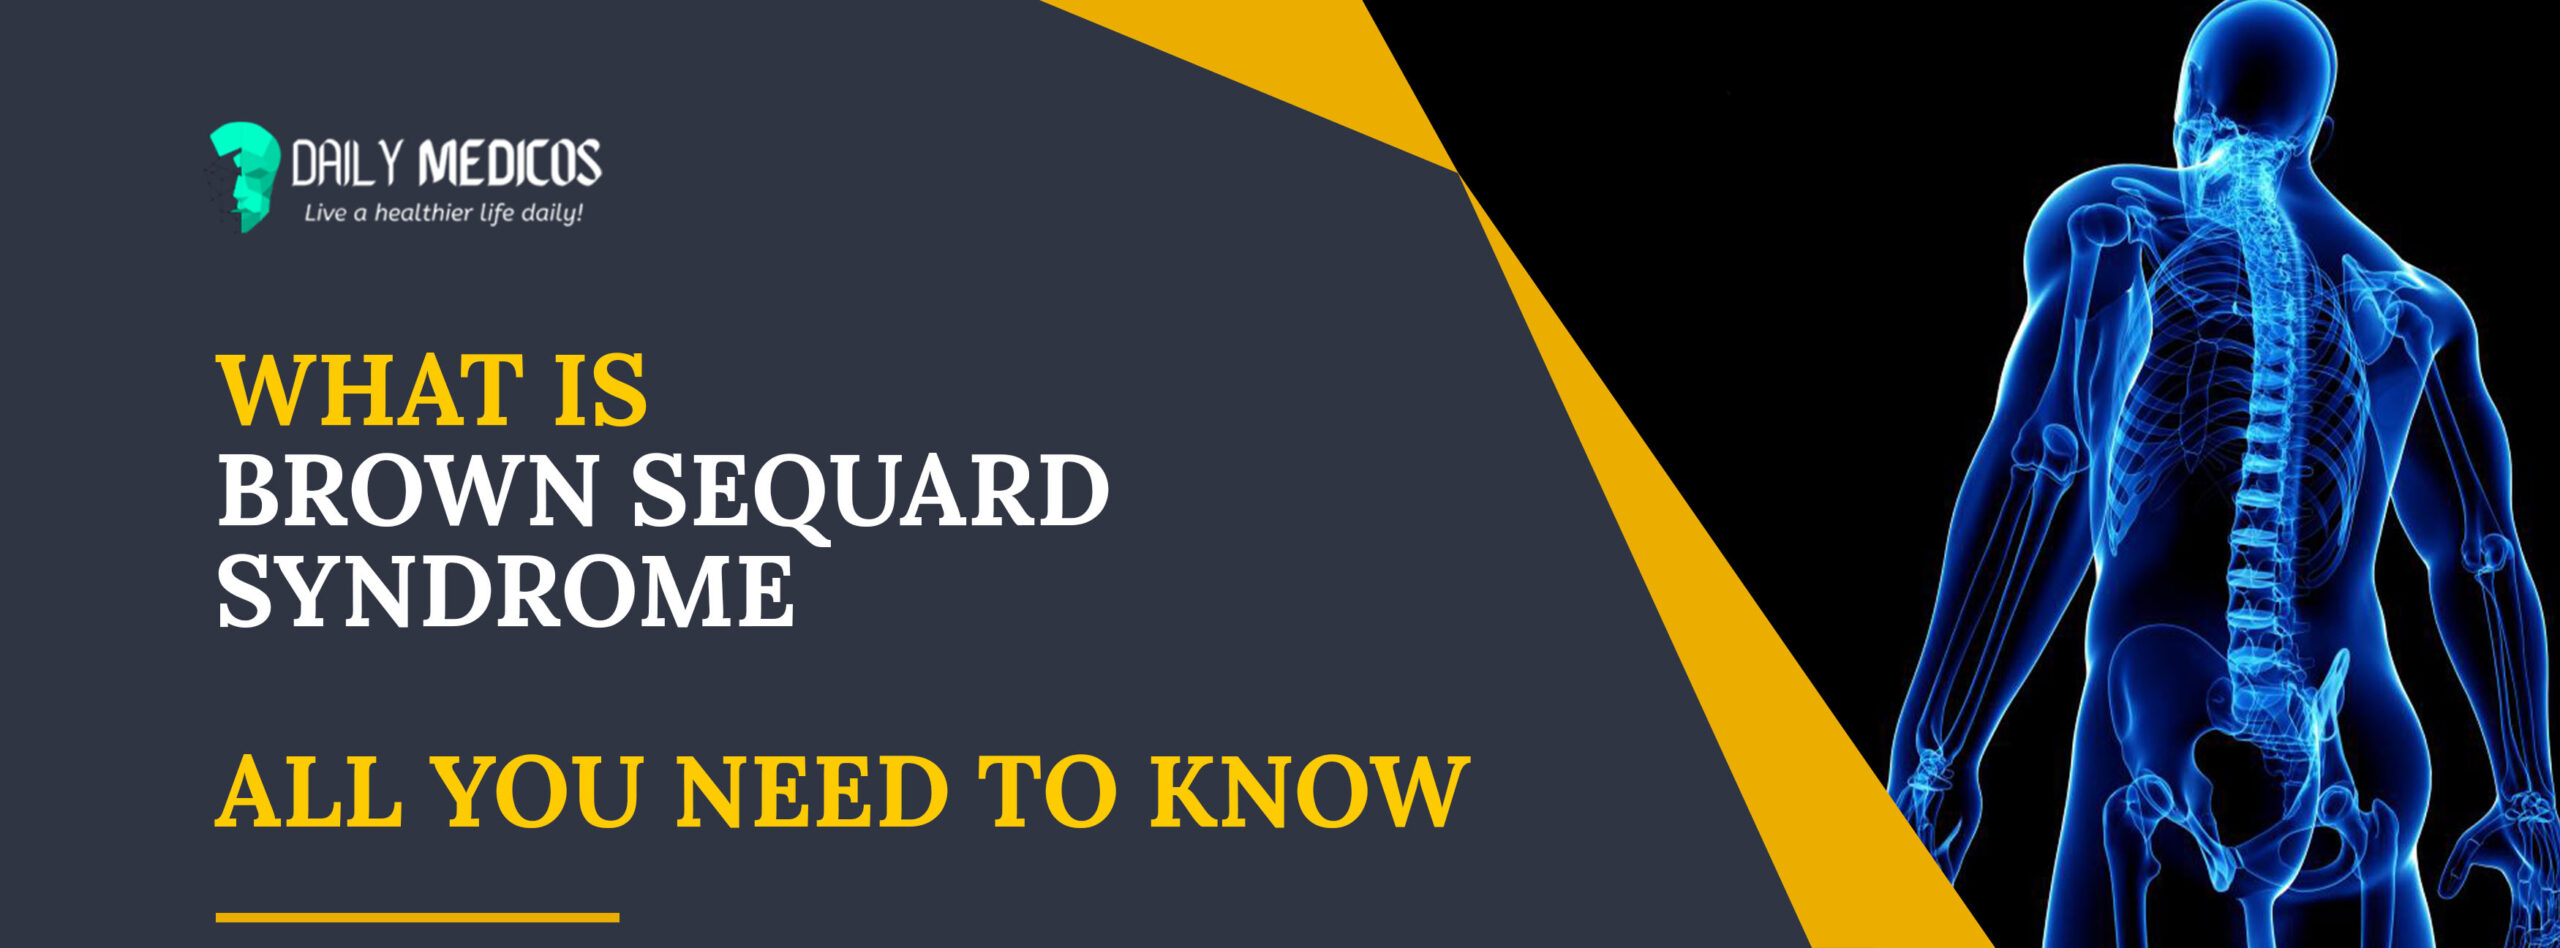 Brown Sequard Syndrome: All You Need To Know [Learn Through A Video] 1 - Daily Medicos